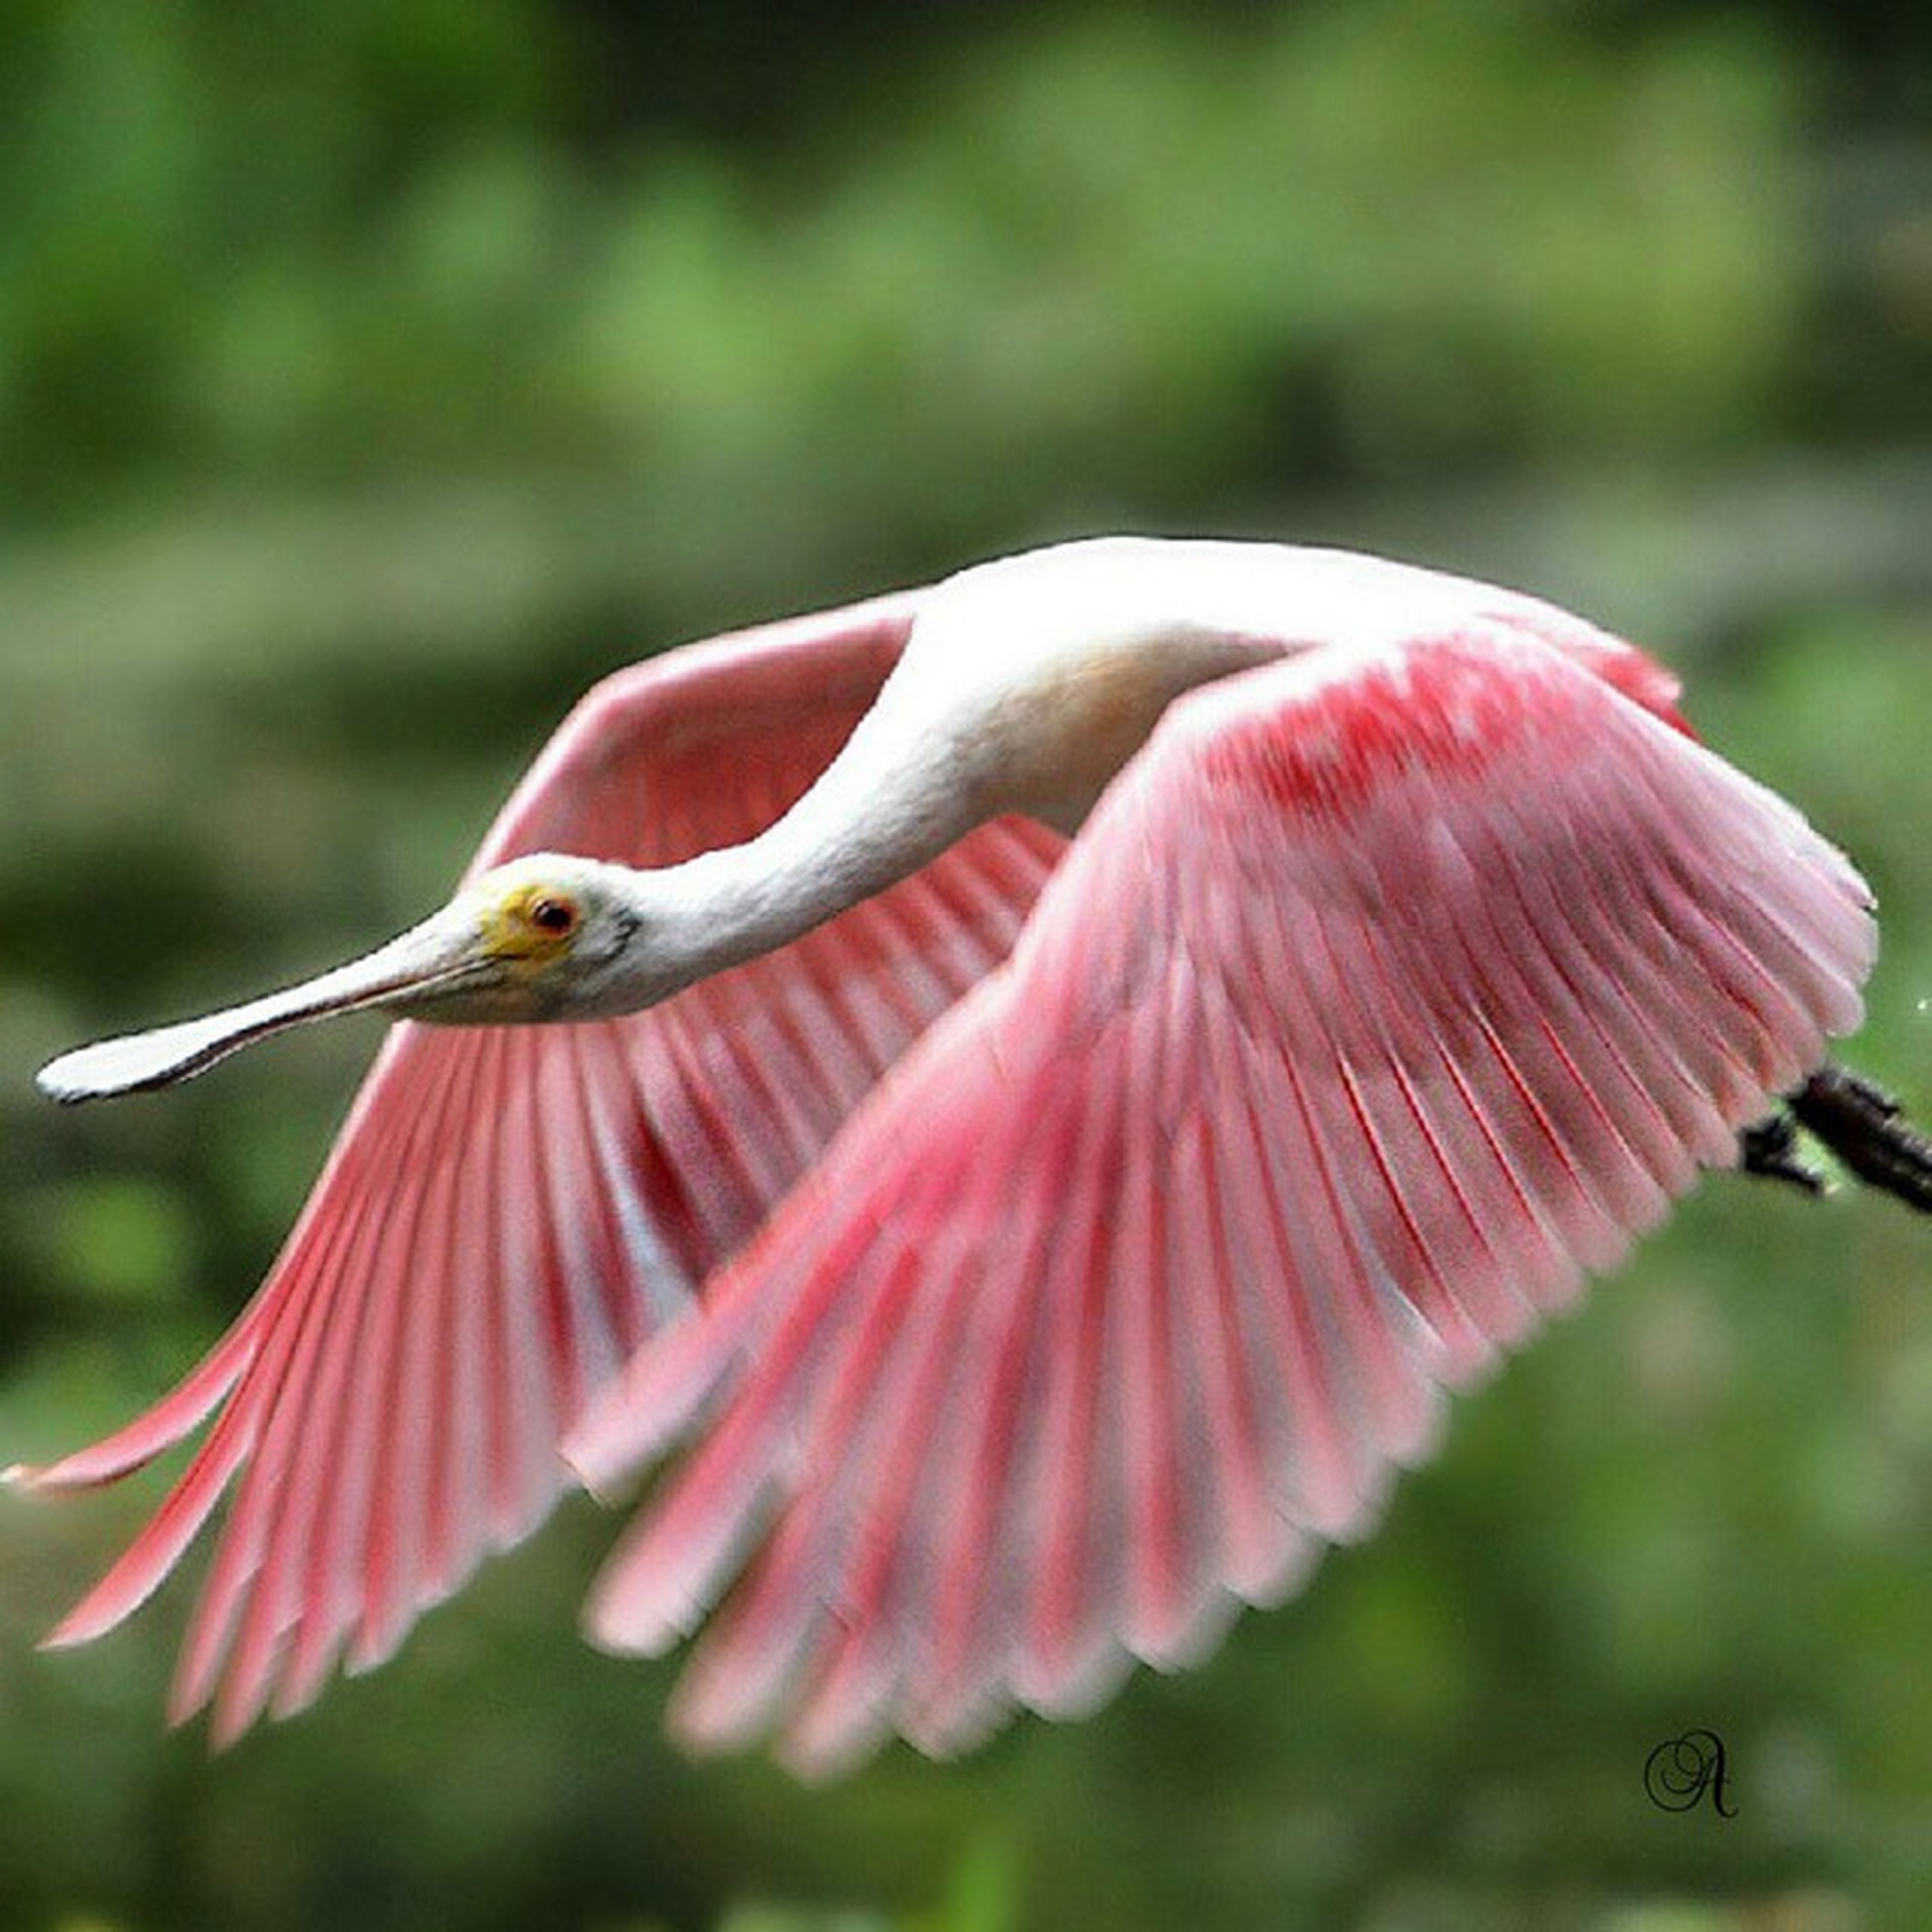 flower, animal themes, animals in the wild, wildlife, pink color, focus on foreground, one animal, close-up, freshness, petal, beauty in nature, fragility, nature, growth, flower head, selective focus, outdoors, day, single flower, bird